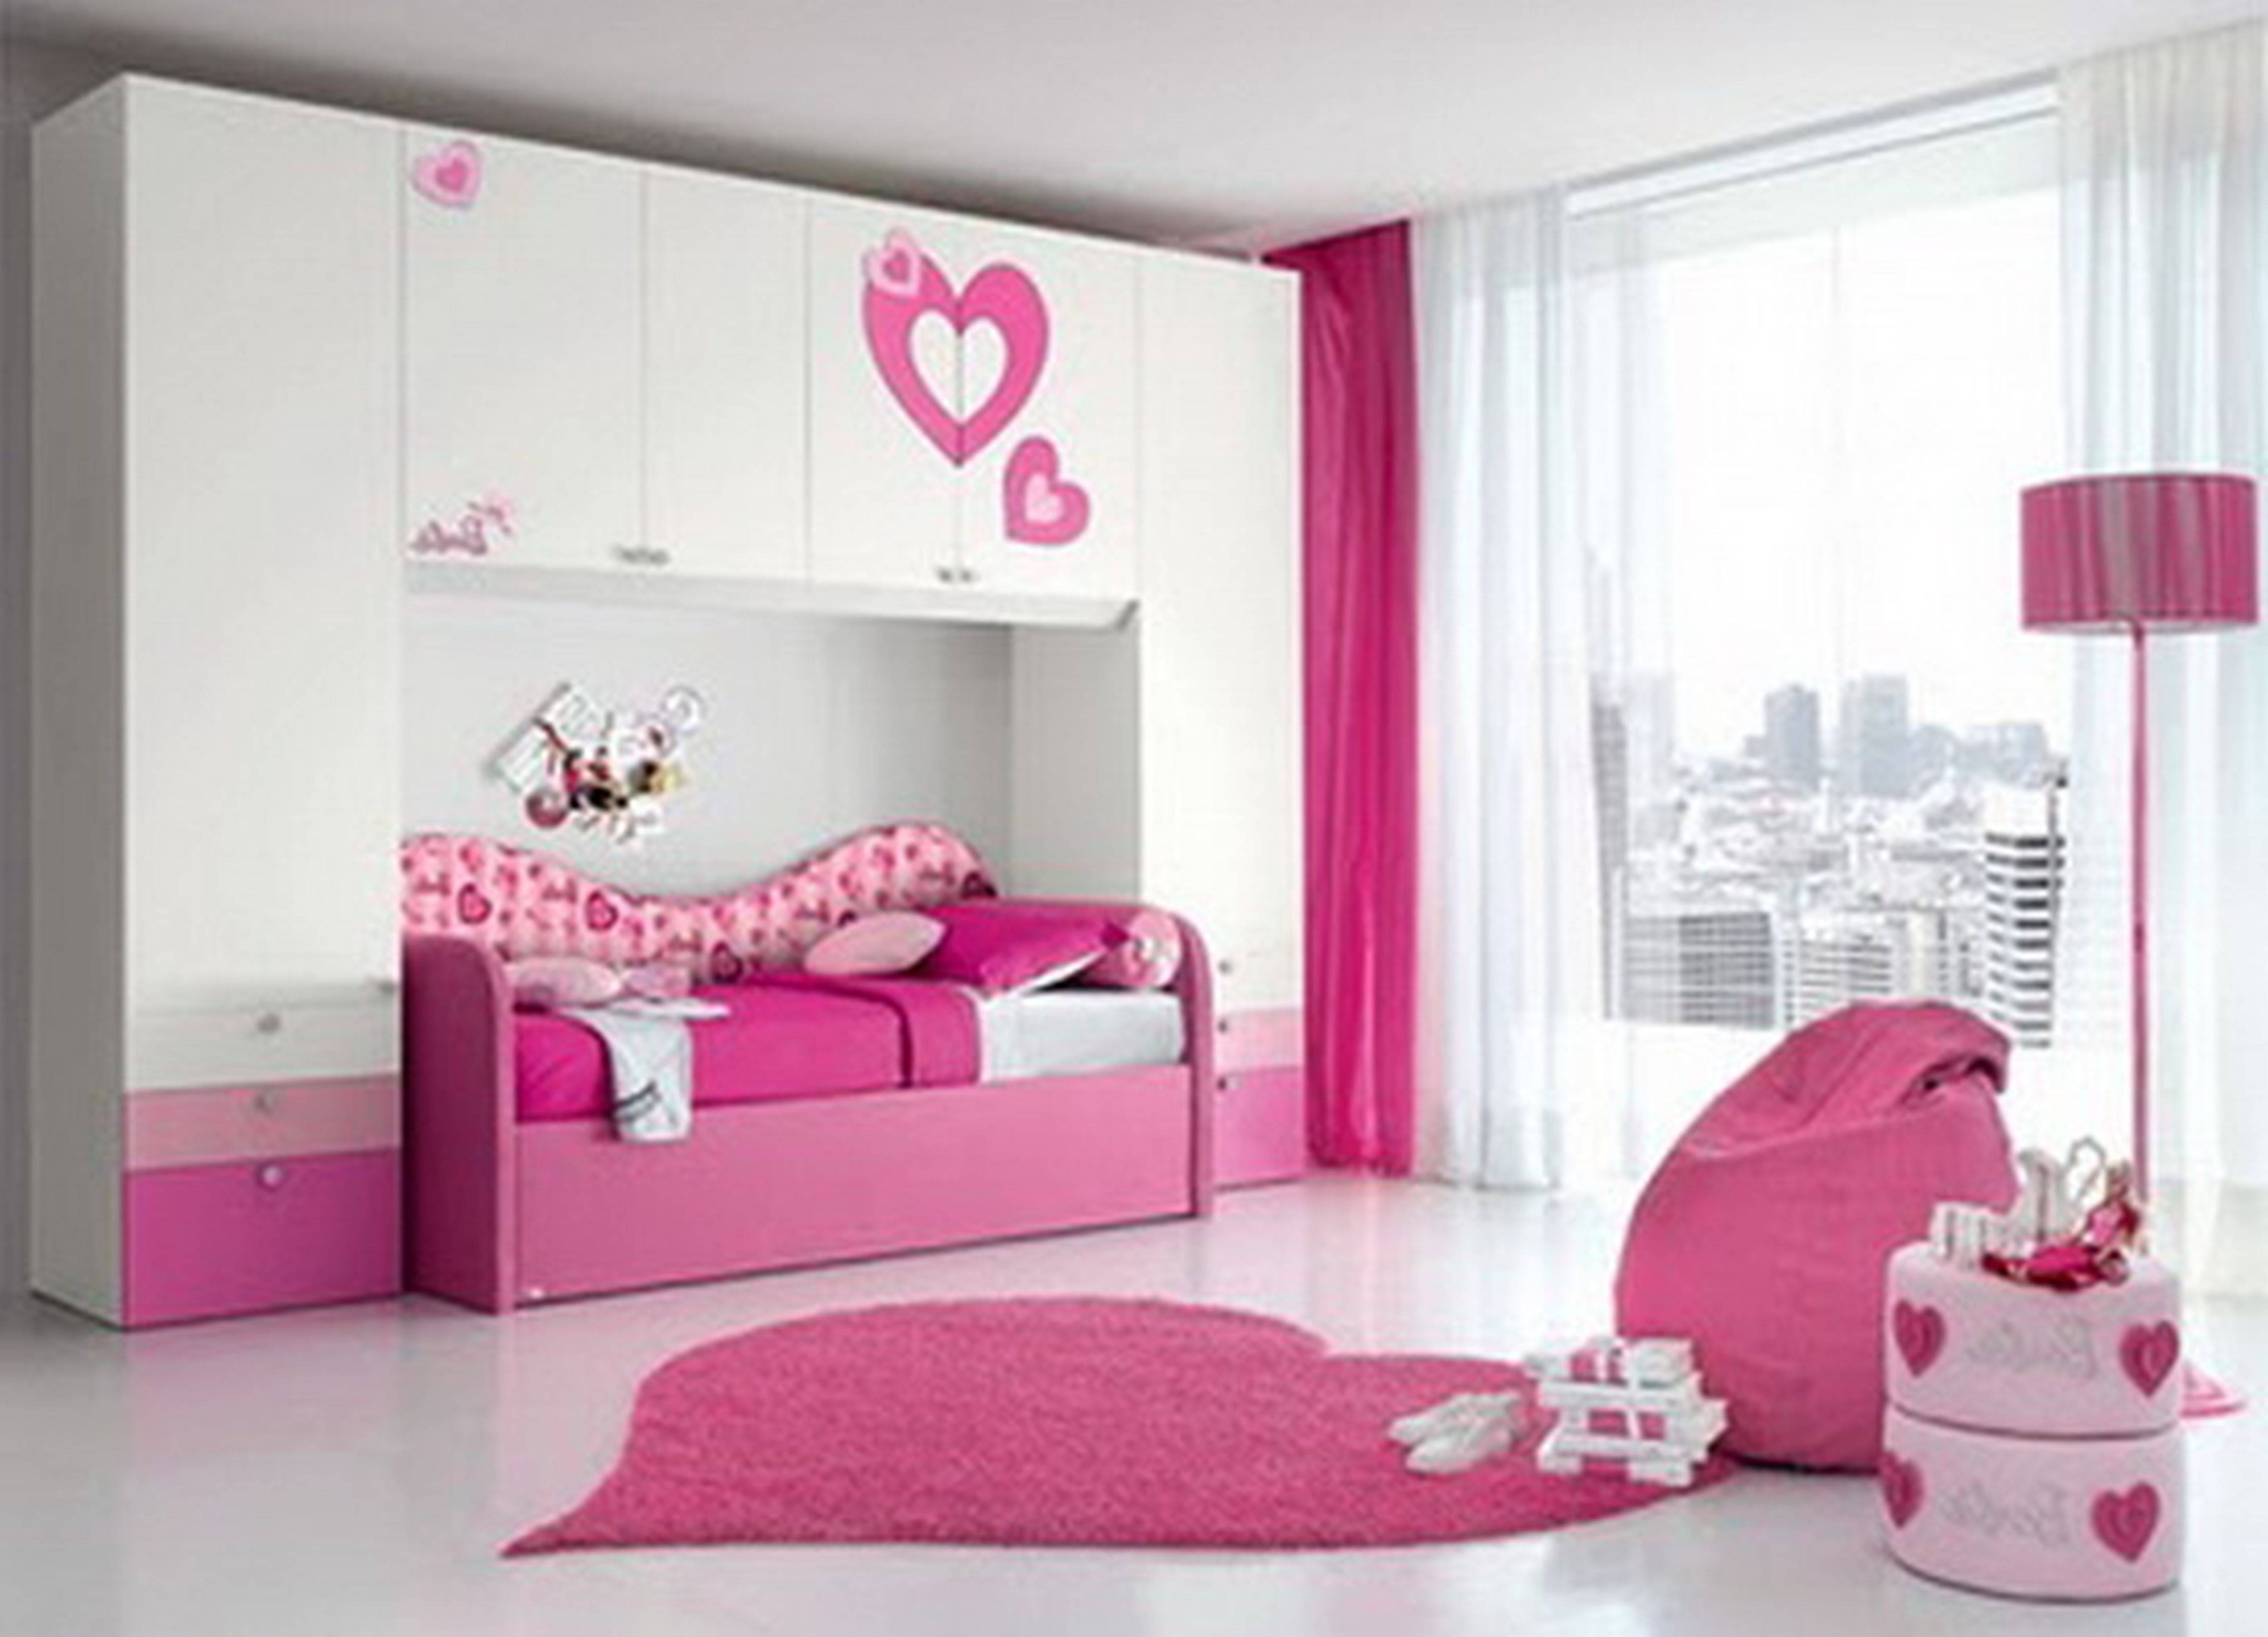 Bedroom : Bedroom Pictures Childrens Designs Kids Child Room Blue pertaining to Childrens Pink Wardrobes (Image 3 of 30)